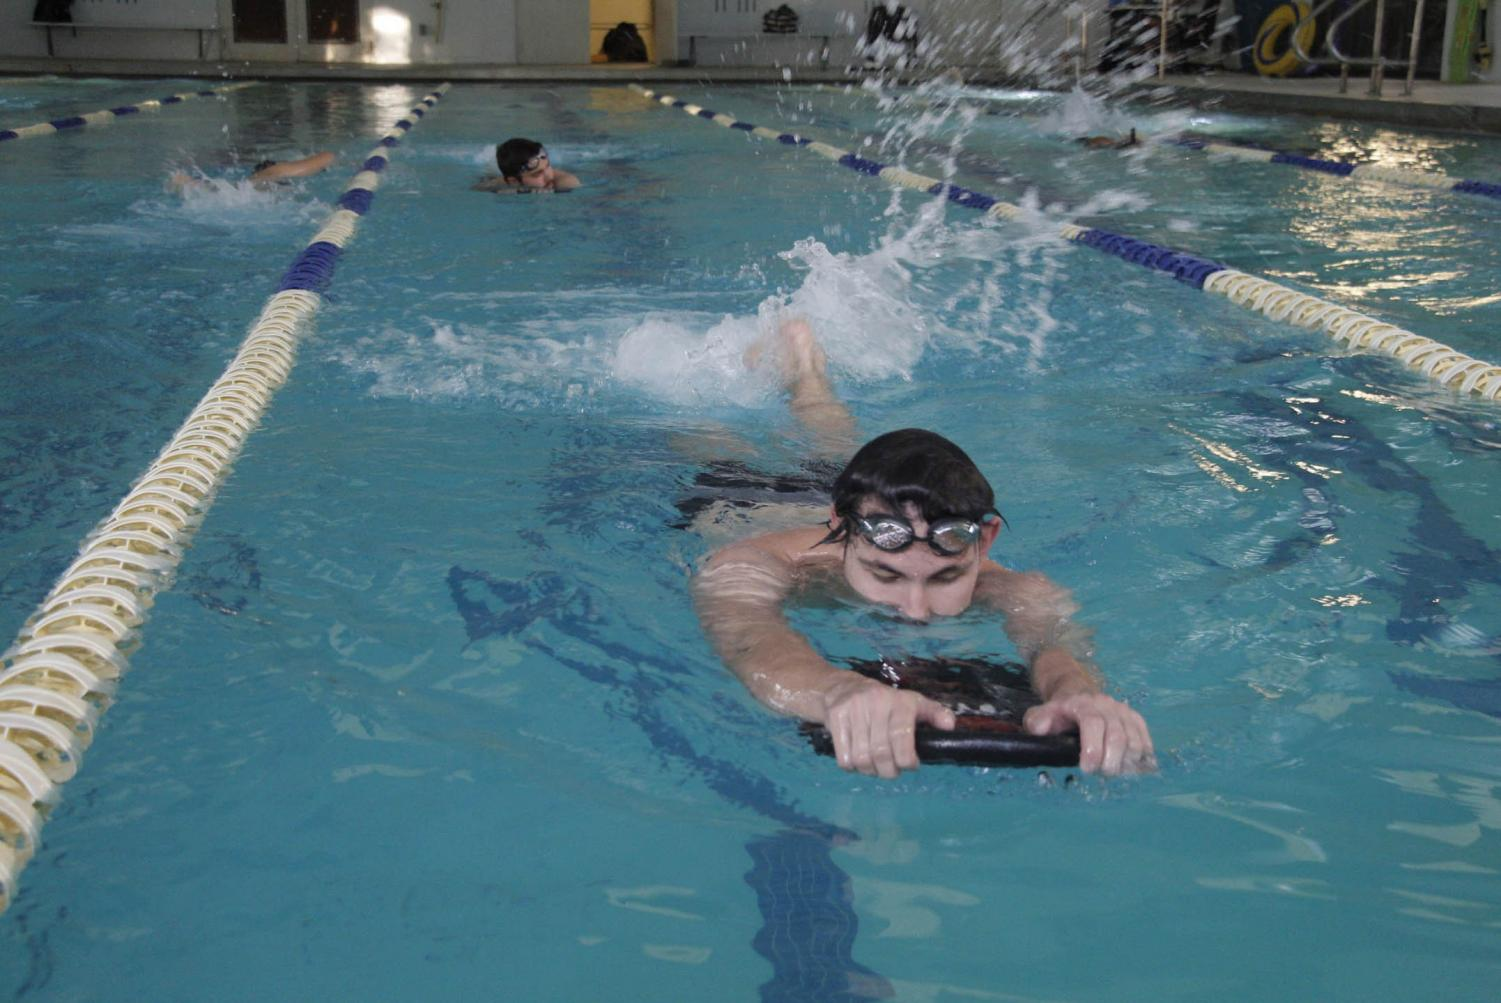 Club member Andrew Jusbasche completes his lap during the team's weekly practice sessions.